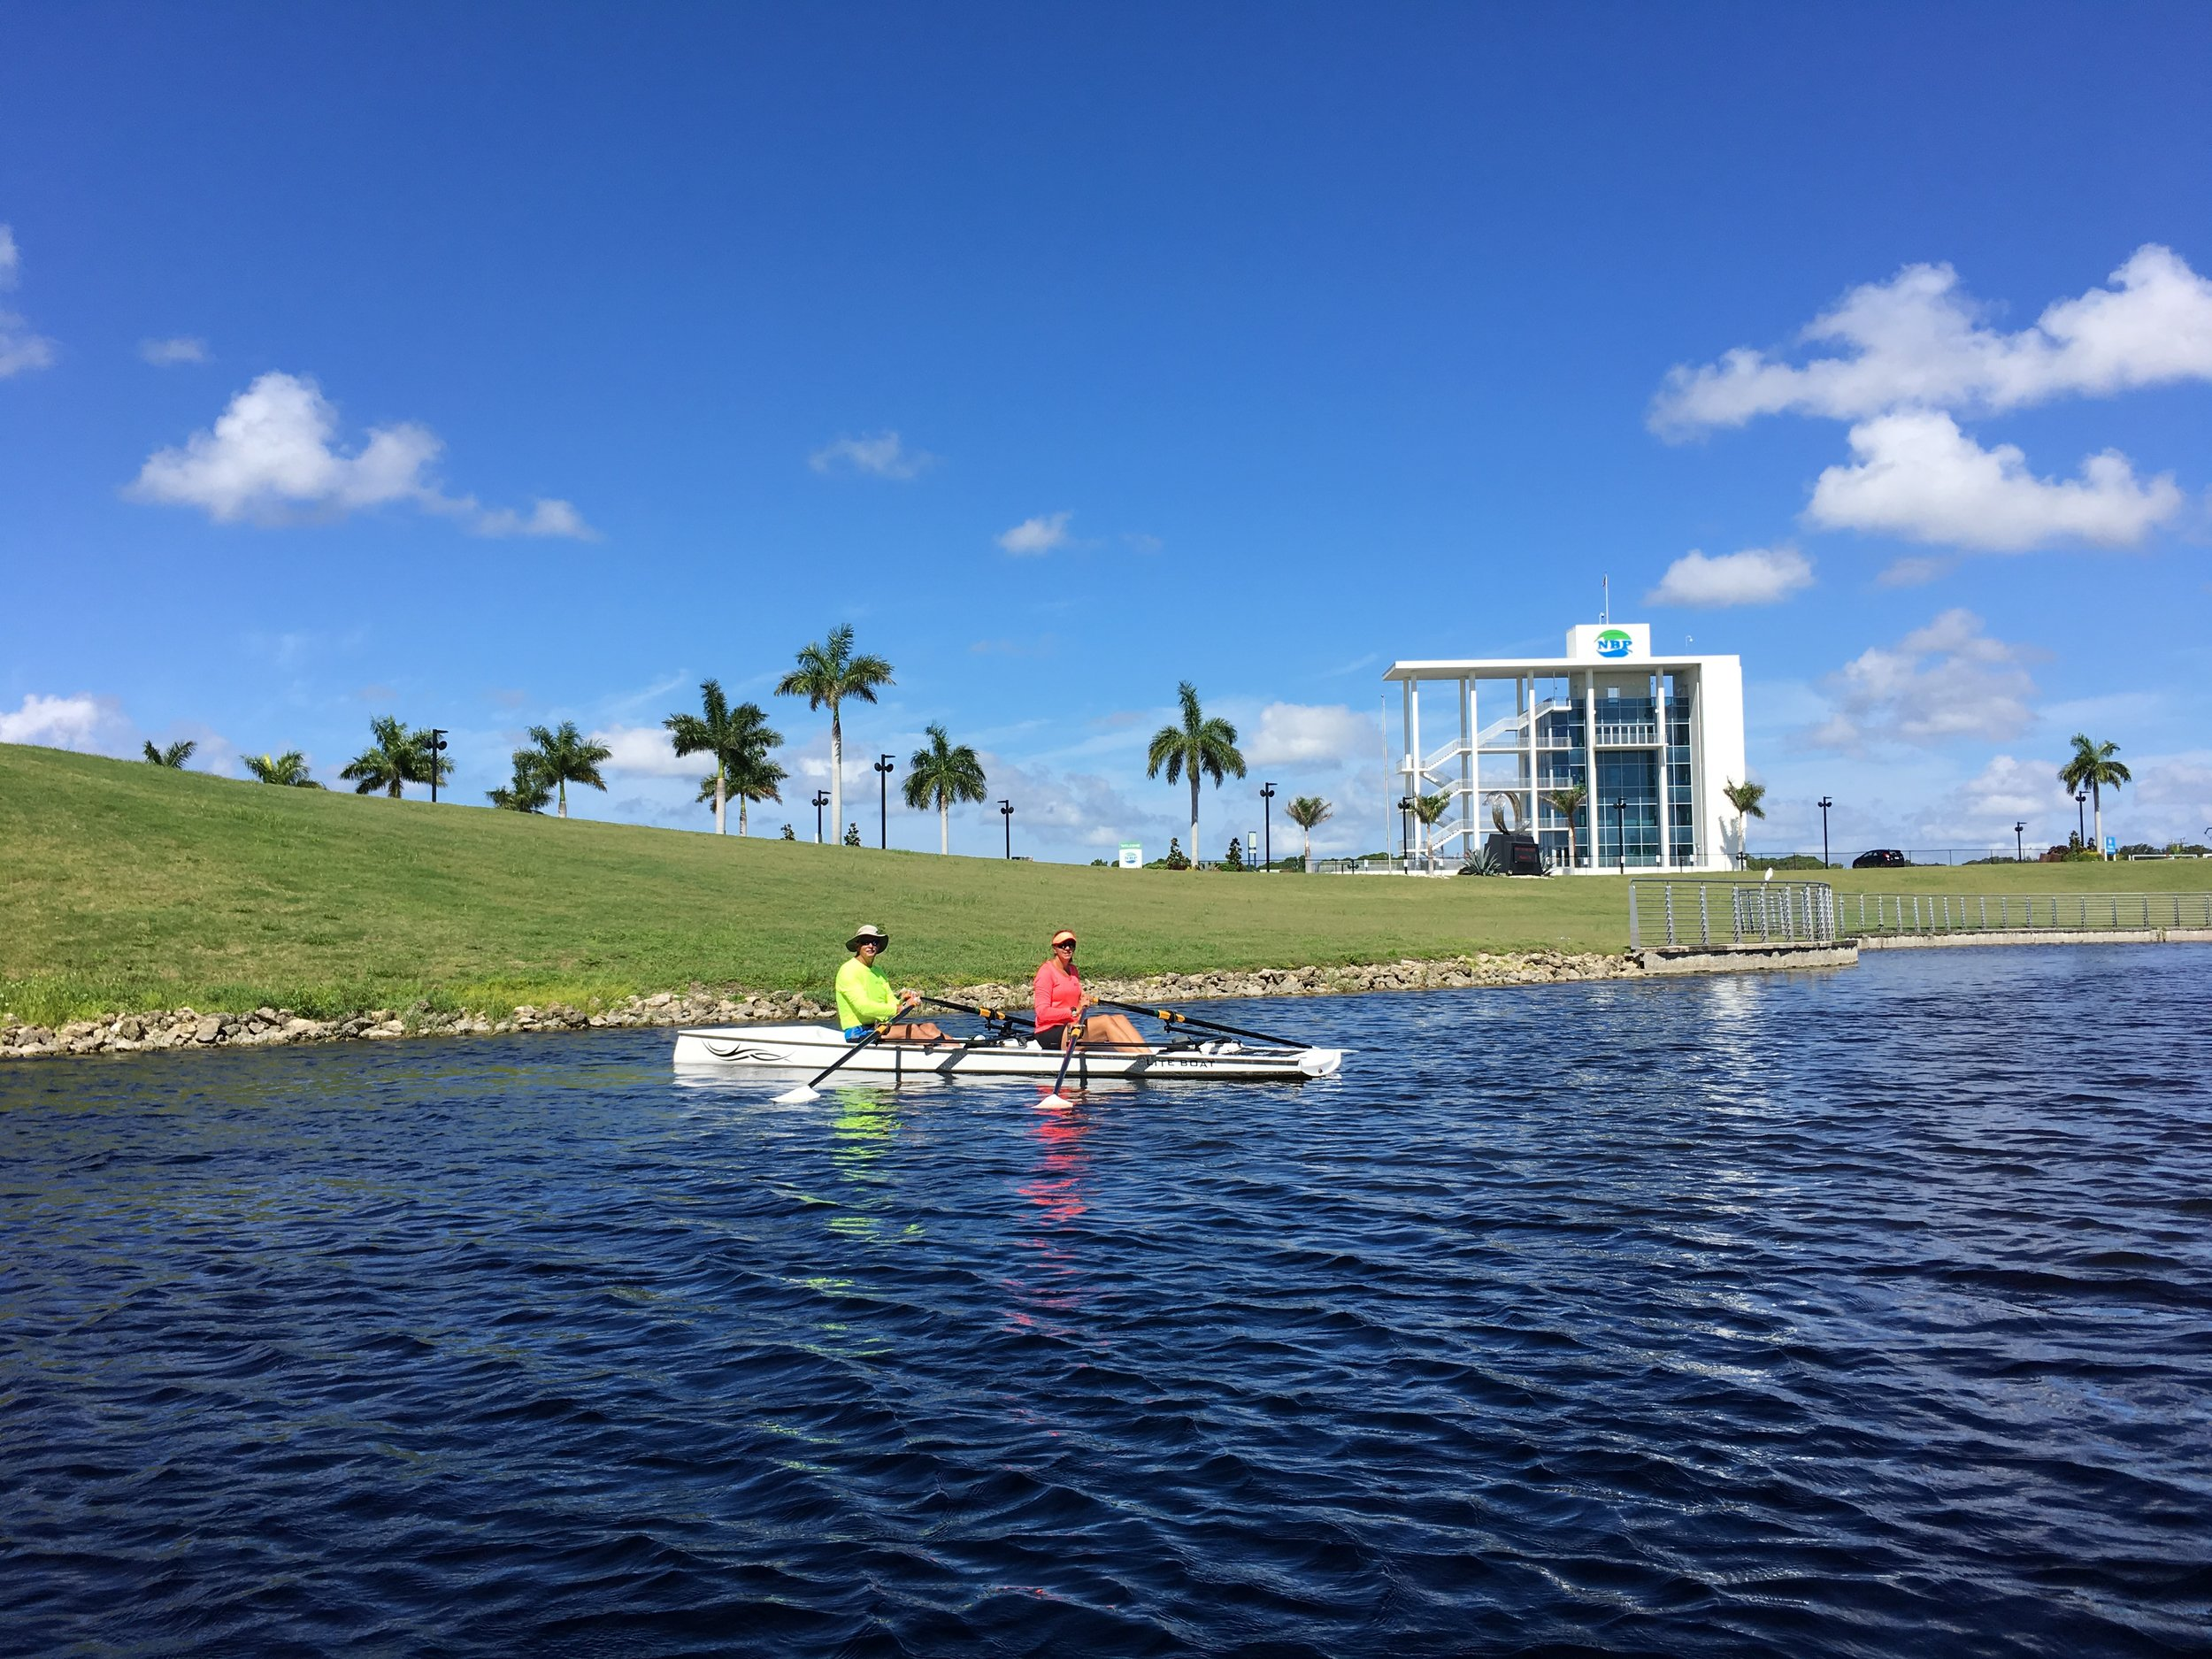 Nathan Benderson Park - We are lucky to have a world class rowing facility in Sarasota for when we want to test our straight line skills. Look for our booth at the 2018 World Rowing Masters Regatta Sept 27-30. http://nathanbendersonpark.org/